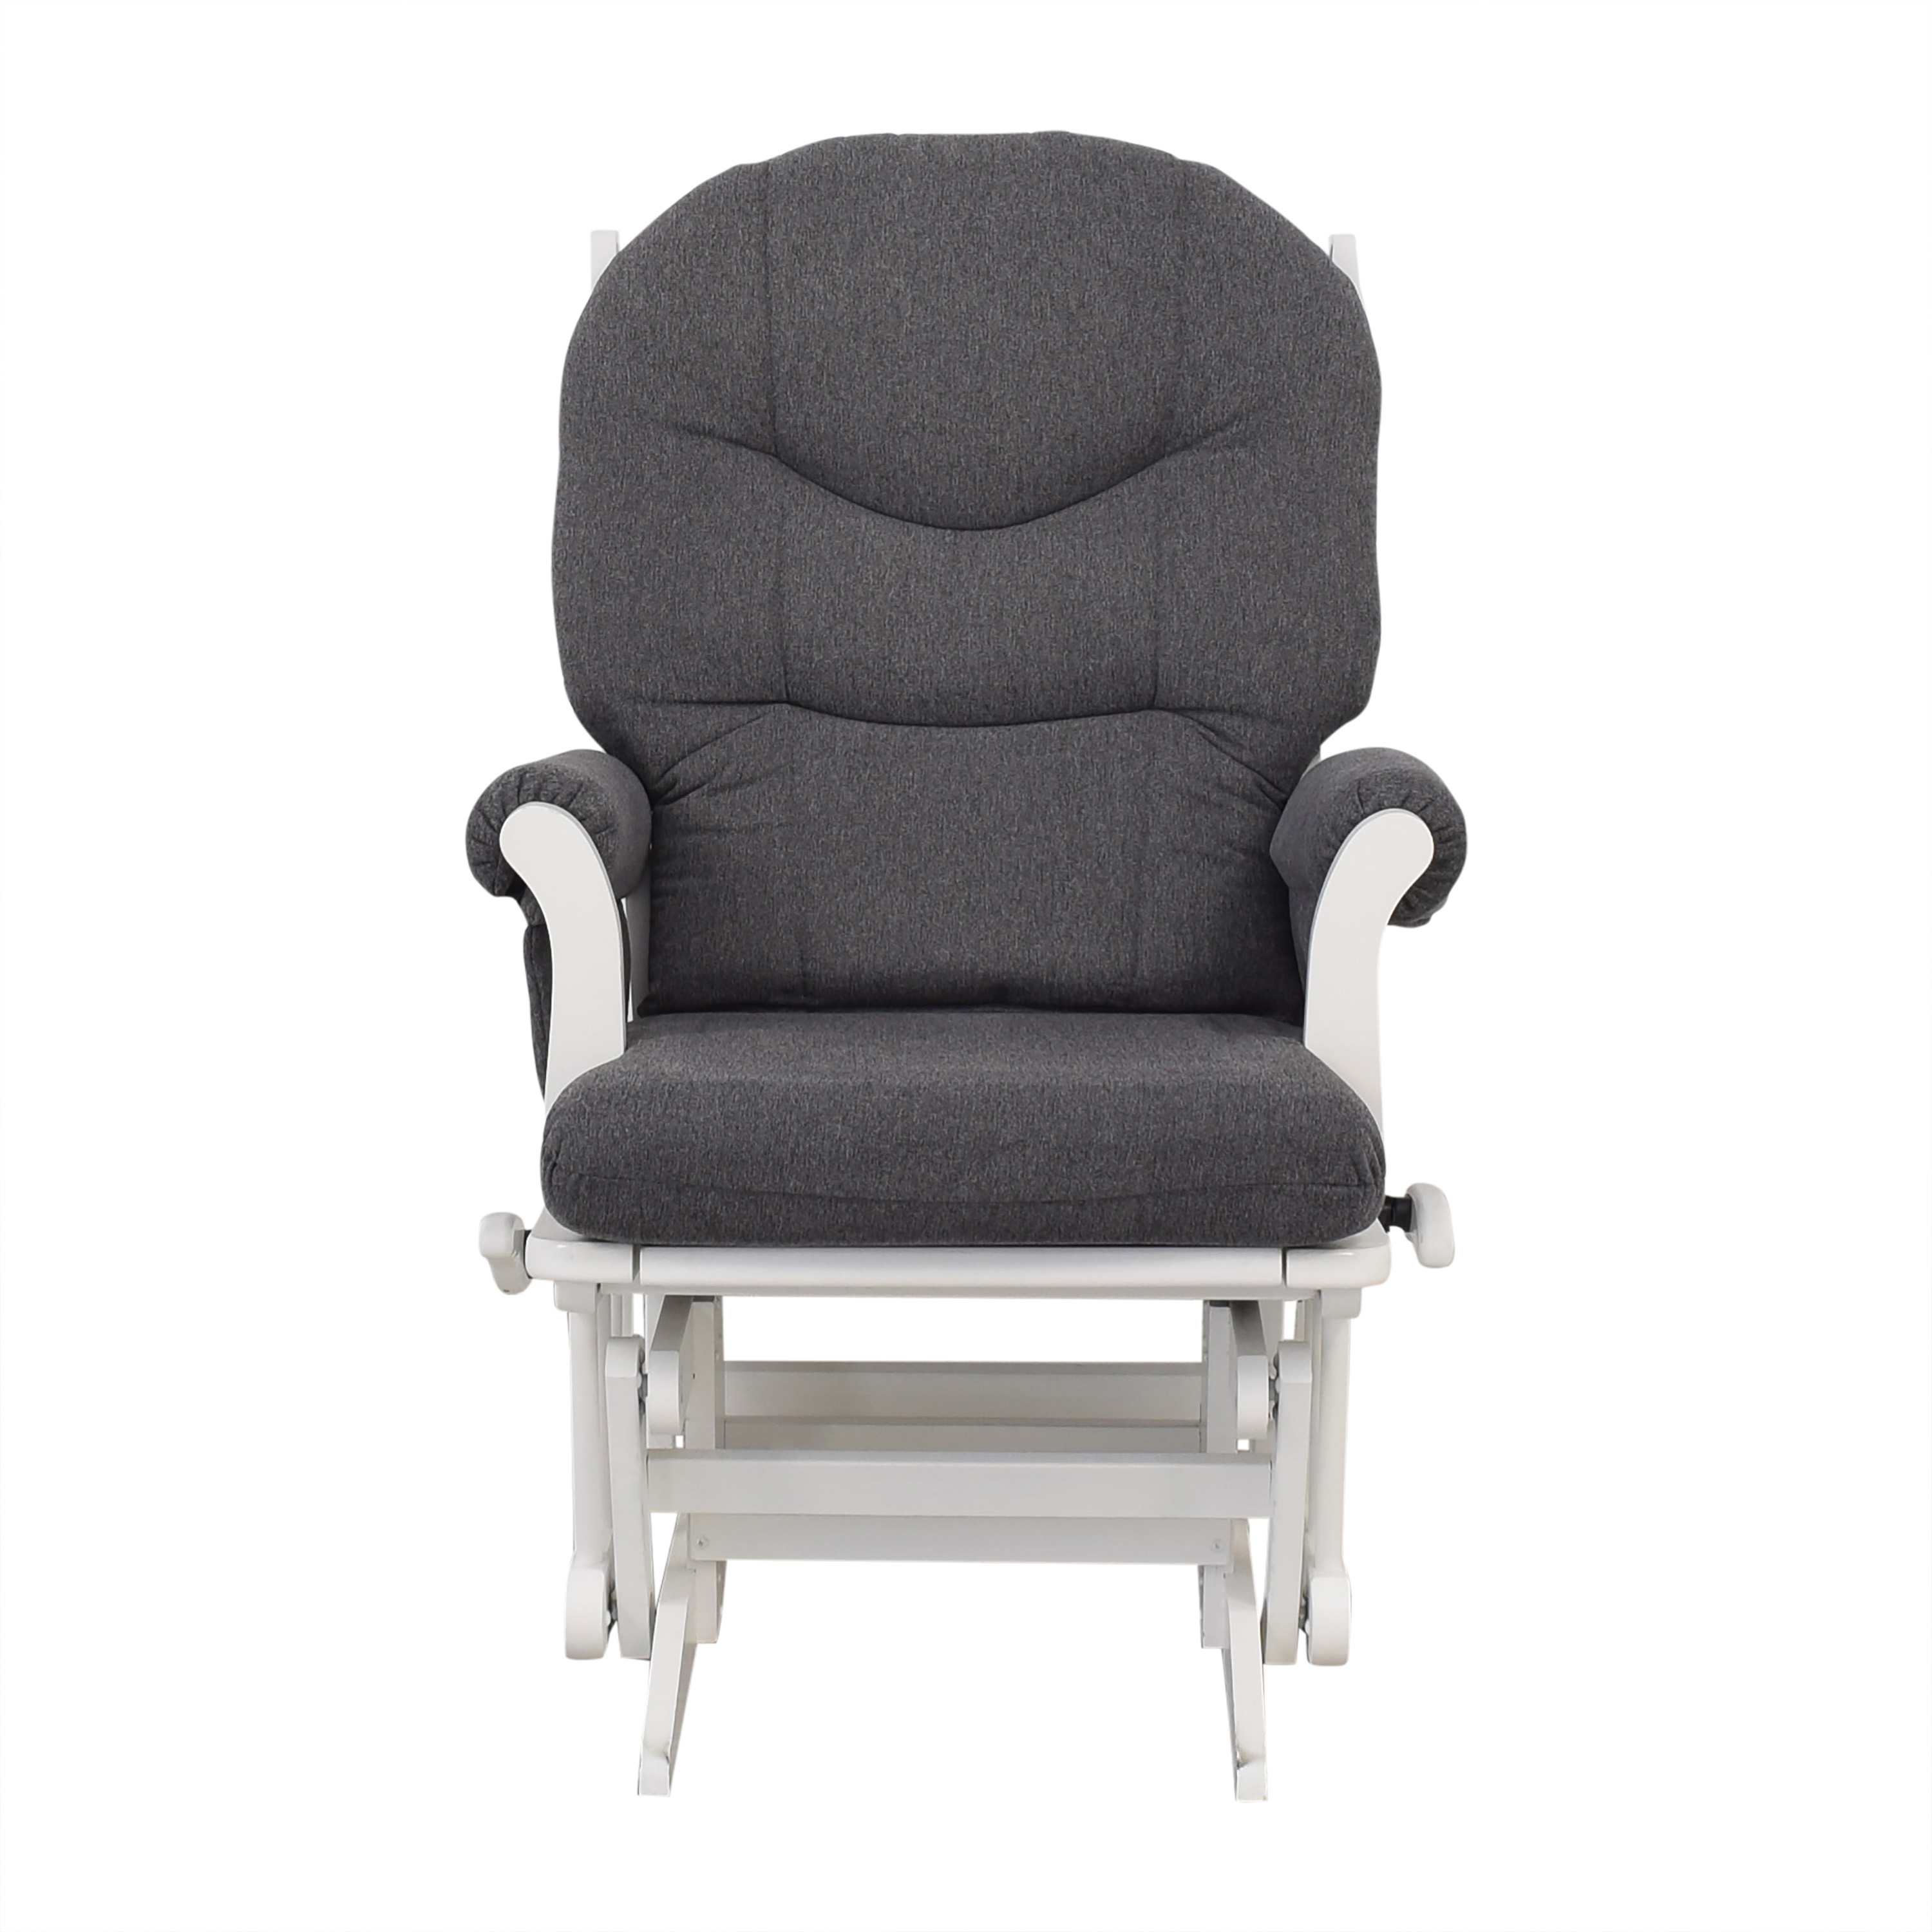 Dutailier Dutailier Multi-Position Reclining Sleigh Glider and Nursing Ottoman dimensions